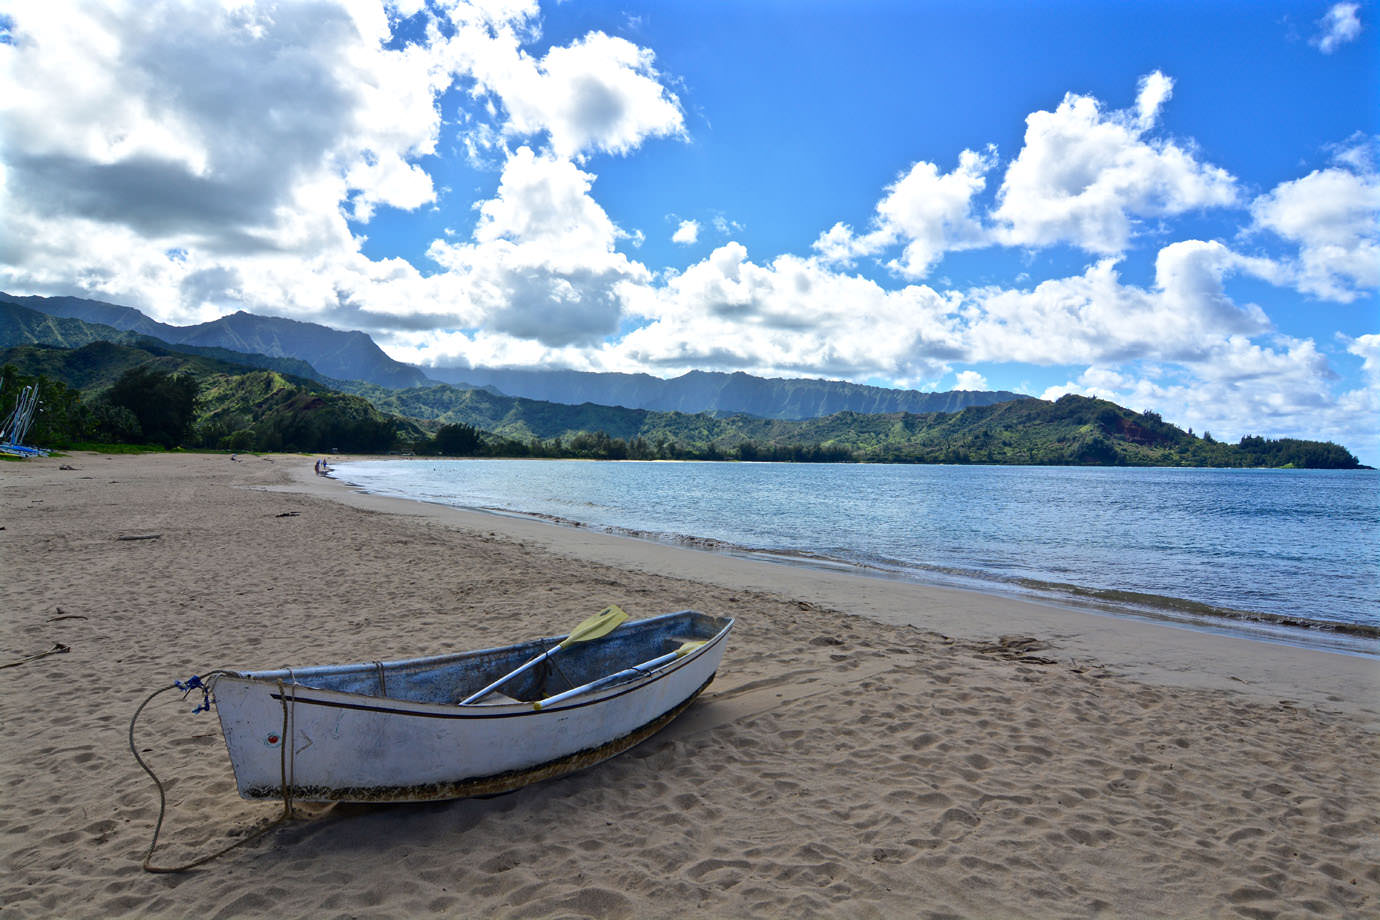 Boat at Hanalei Bay